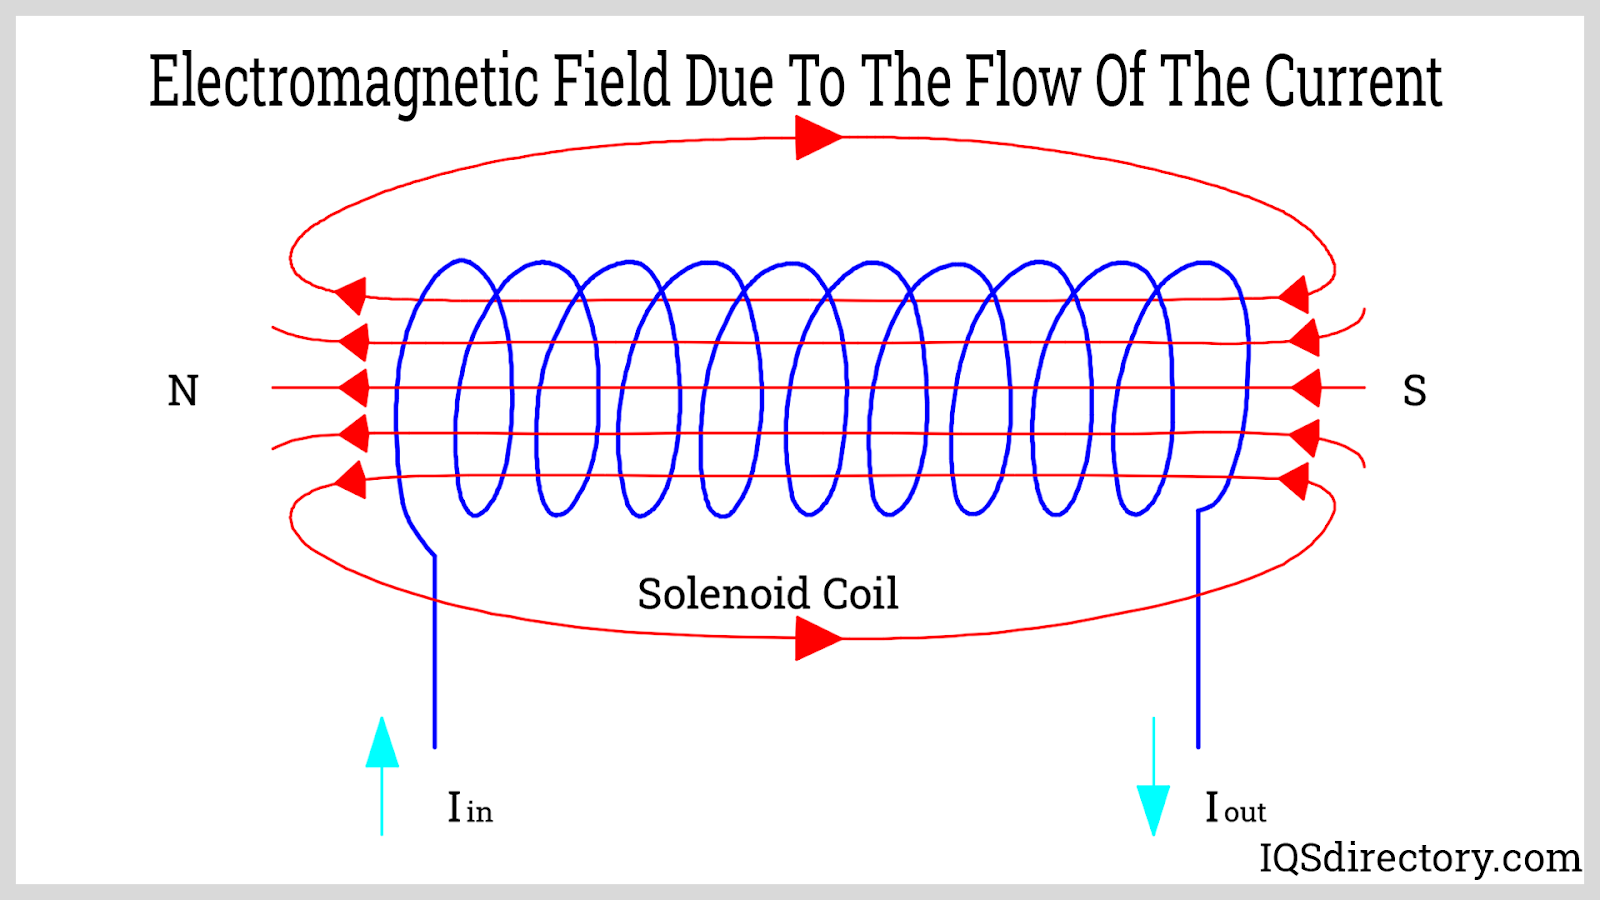 Electromagnetic Field Due To The Flow of The Current